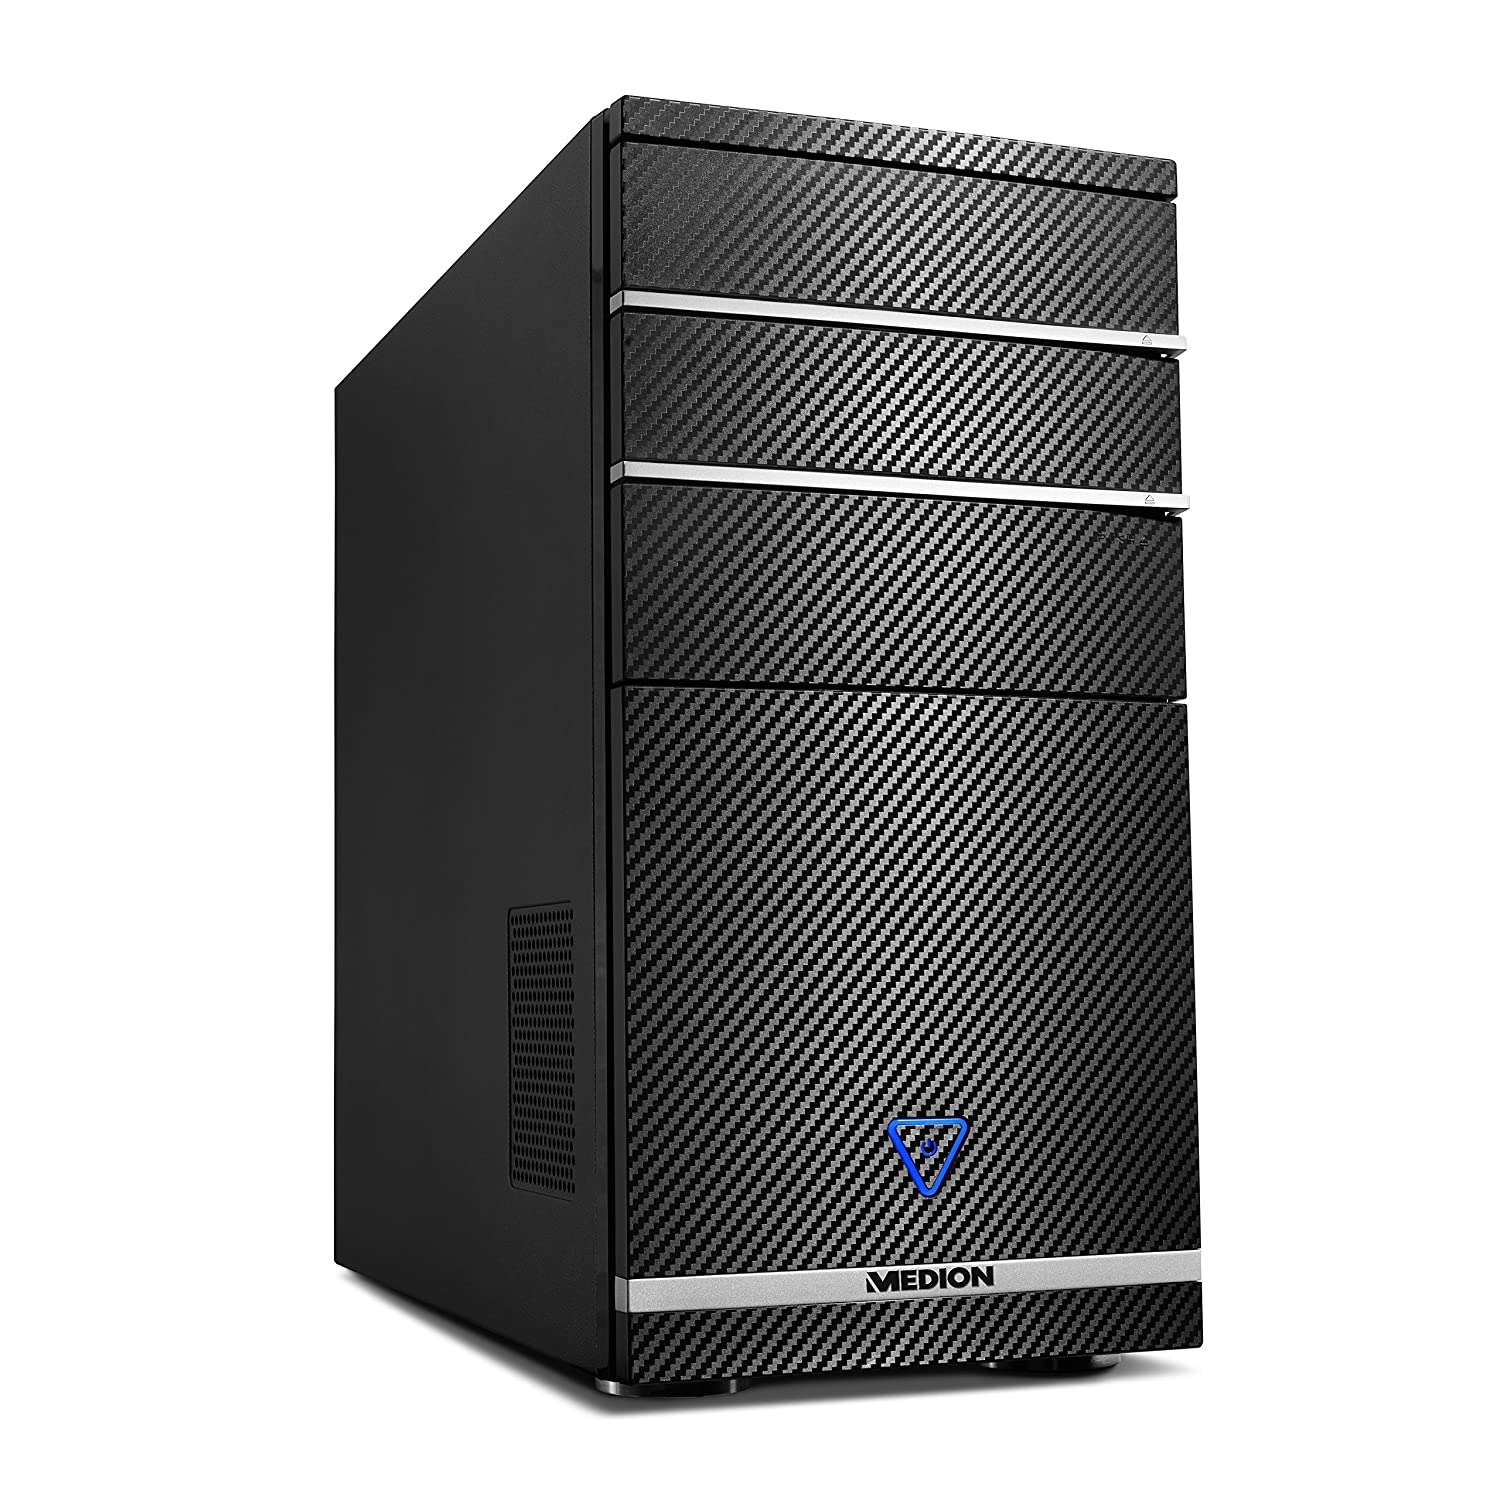 Medion M11 - Ordenador de sobremesa (AMD A8-8650, nVidia GeForce GTX750-2 GB DDR5, Disco Duro de 1 TB, 8 GB de RAM, Windows 10) Negro